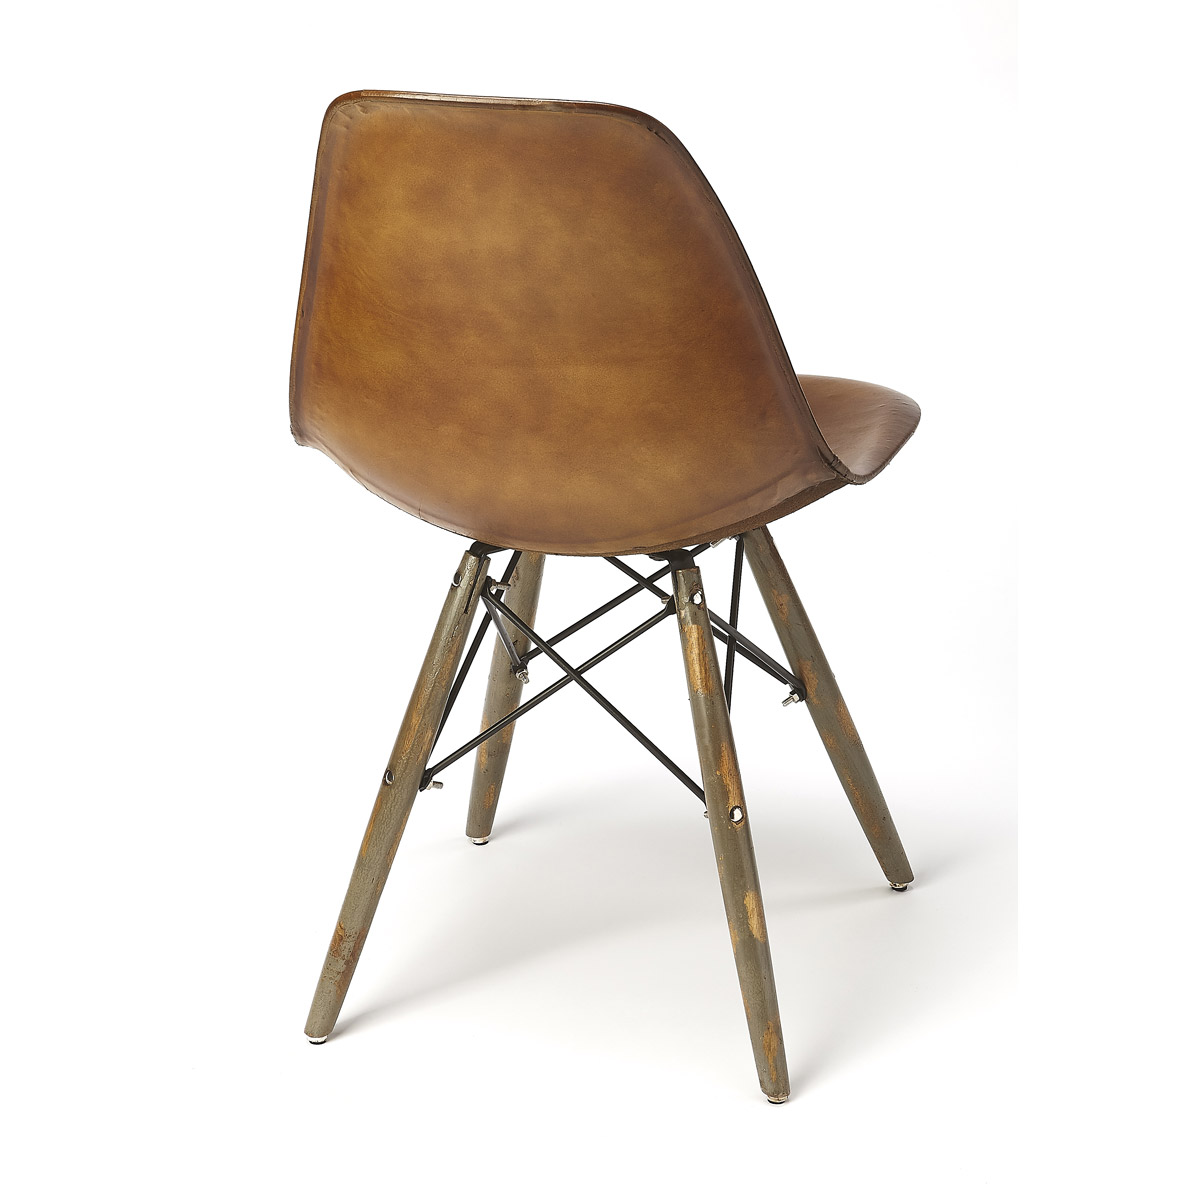 Fine Details About Industrial Chic Saddle 39 Inch Brown Leather Barstool Machost Co Dining Chair Design Ideas Machostcouk